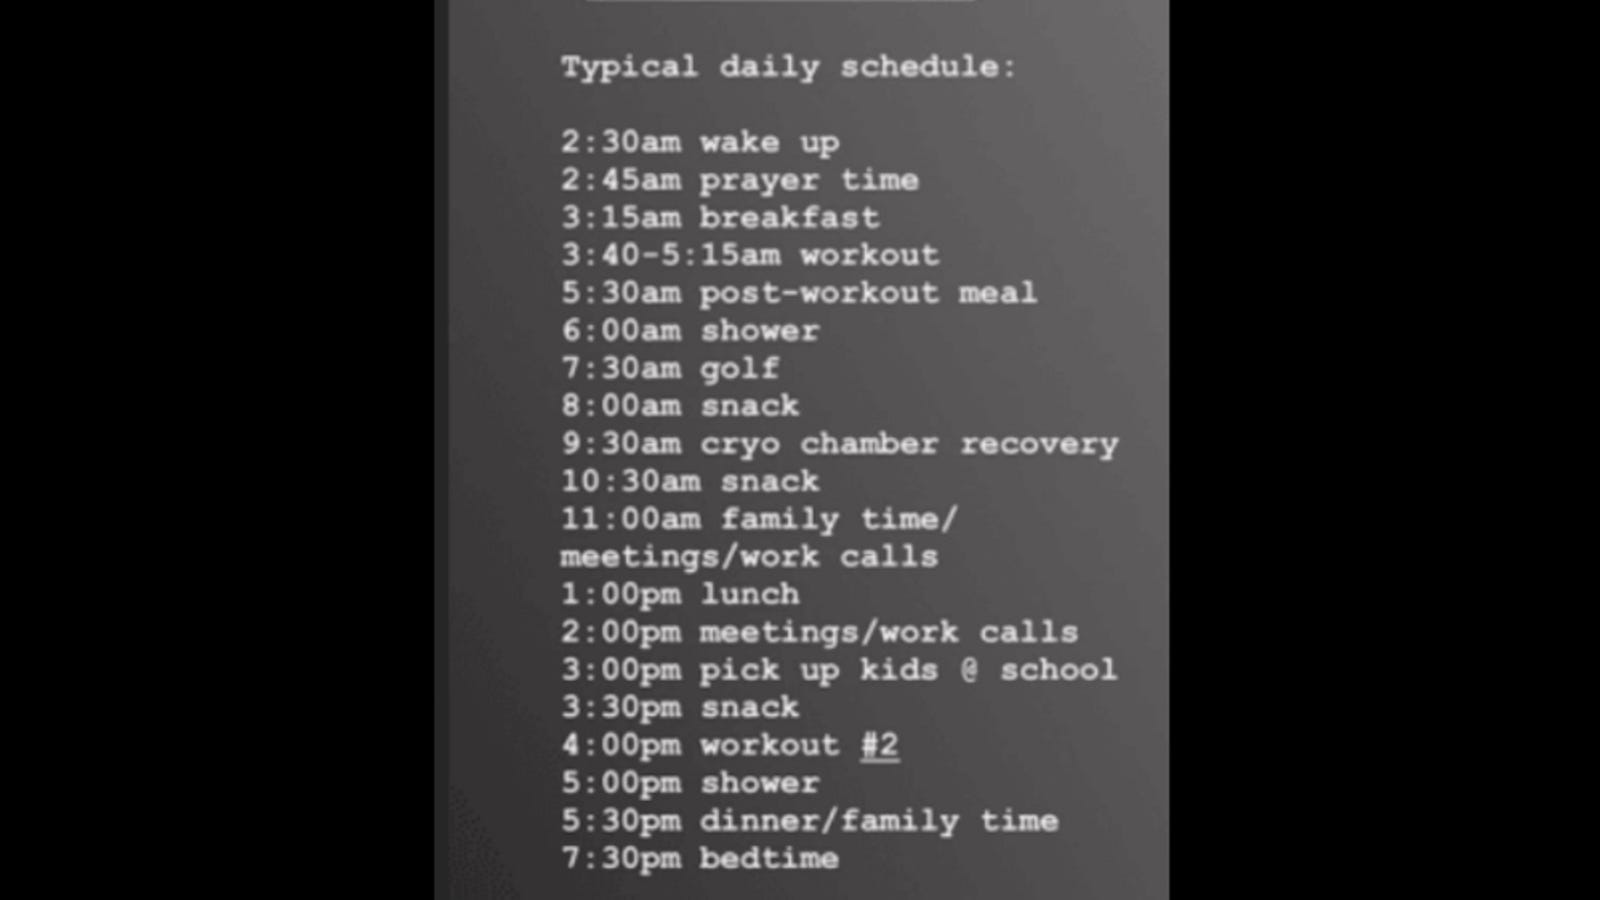 Mark Wahlberg's Typical Daily Schedule Is Not That Bad